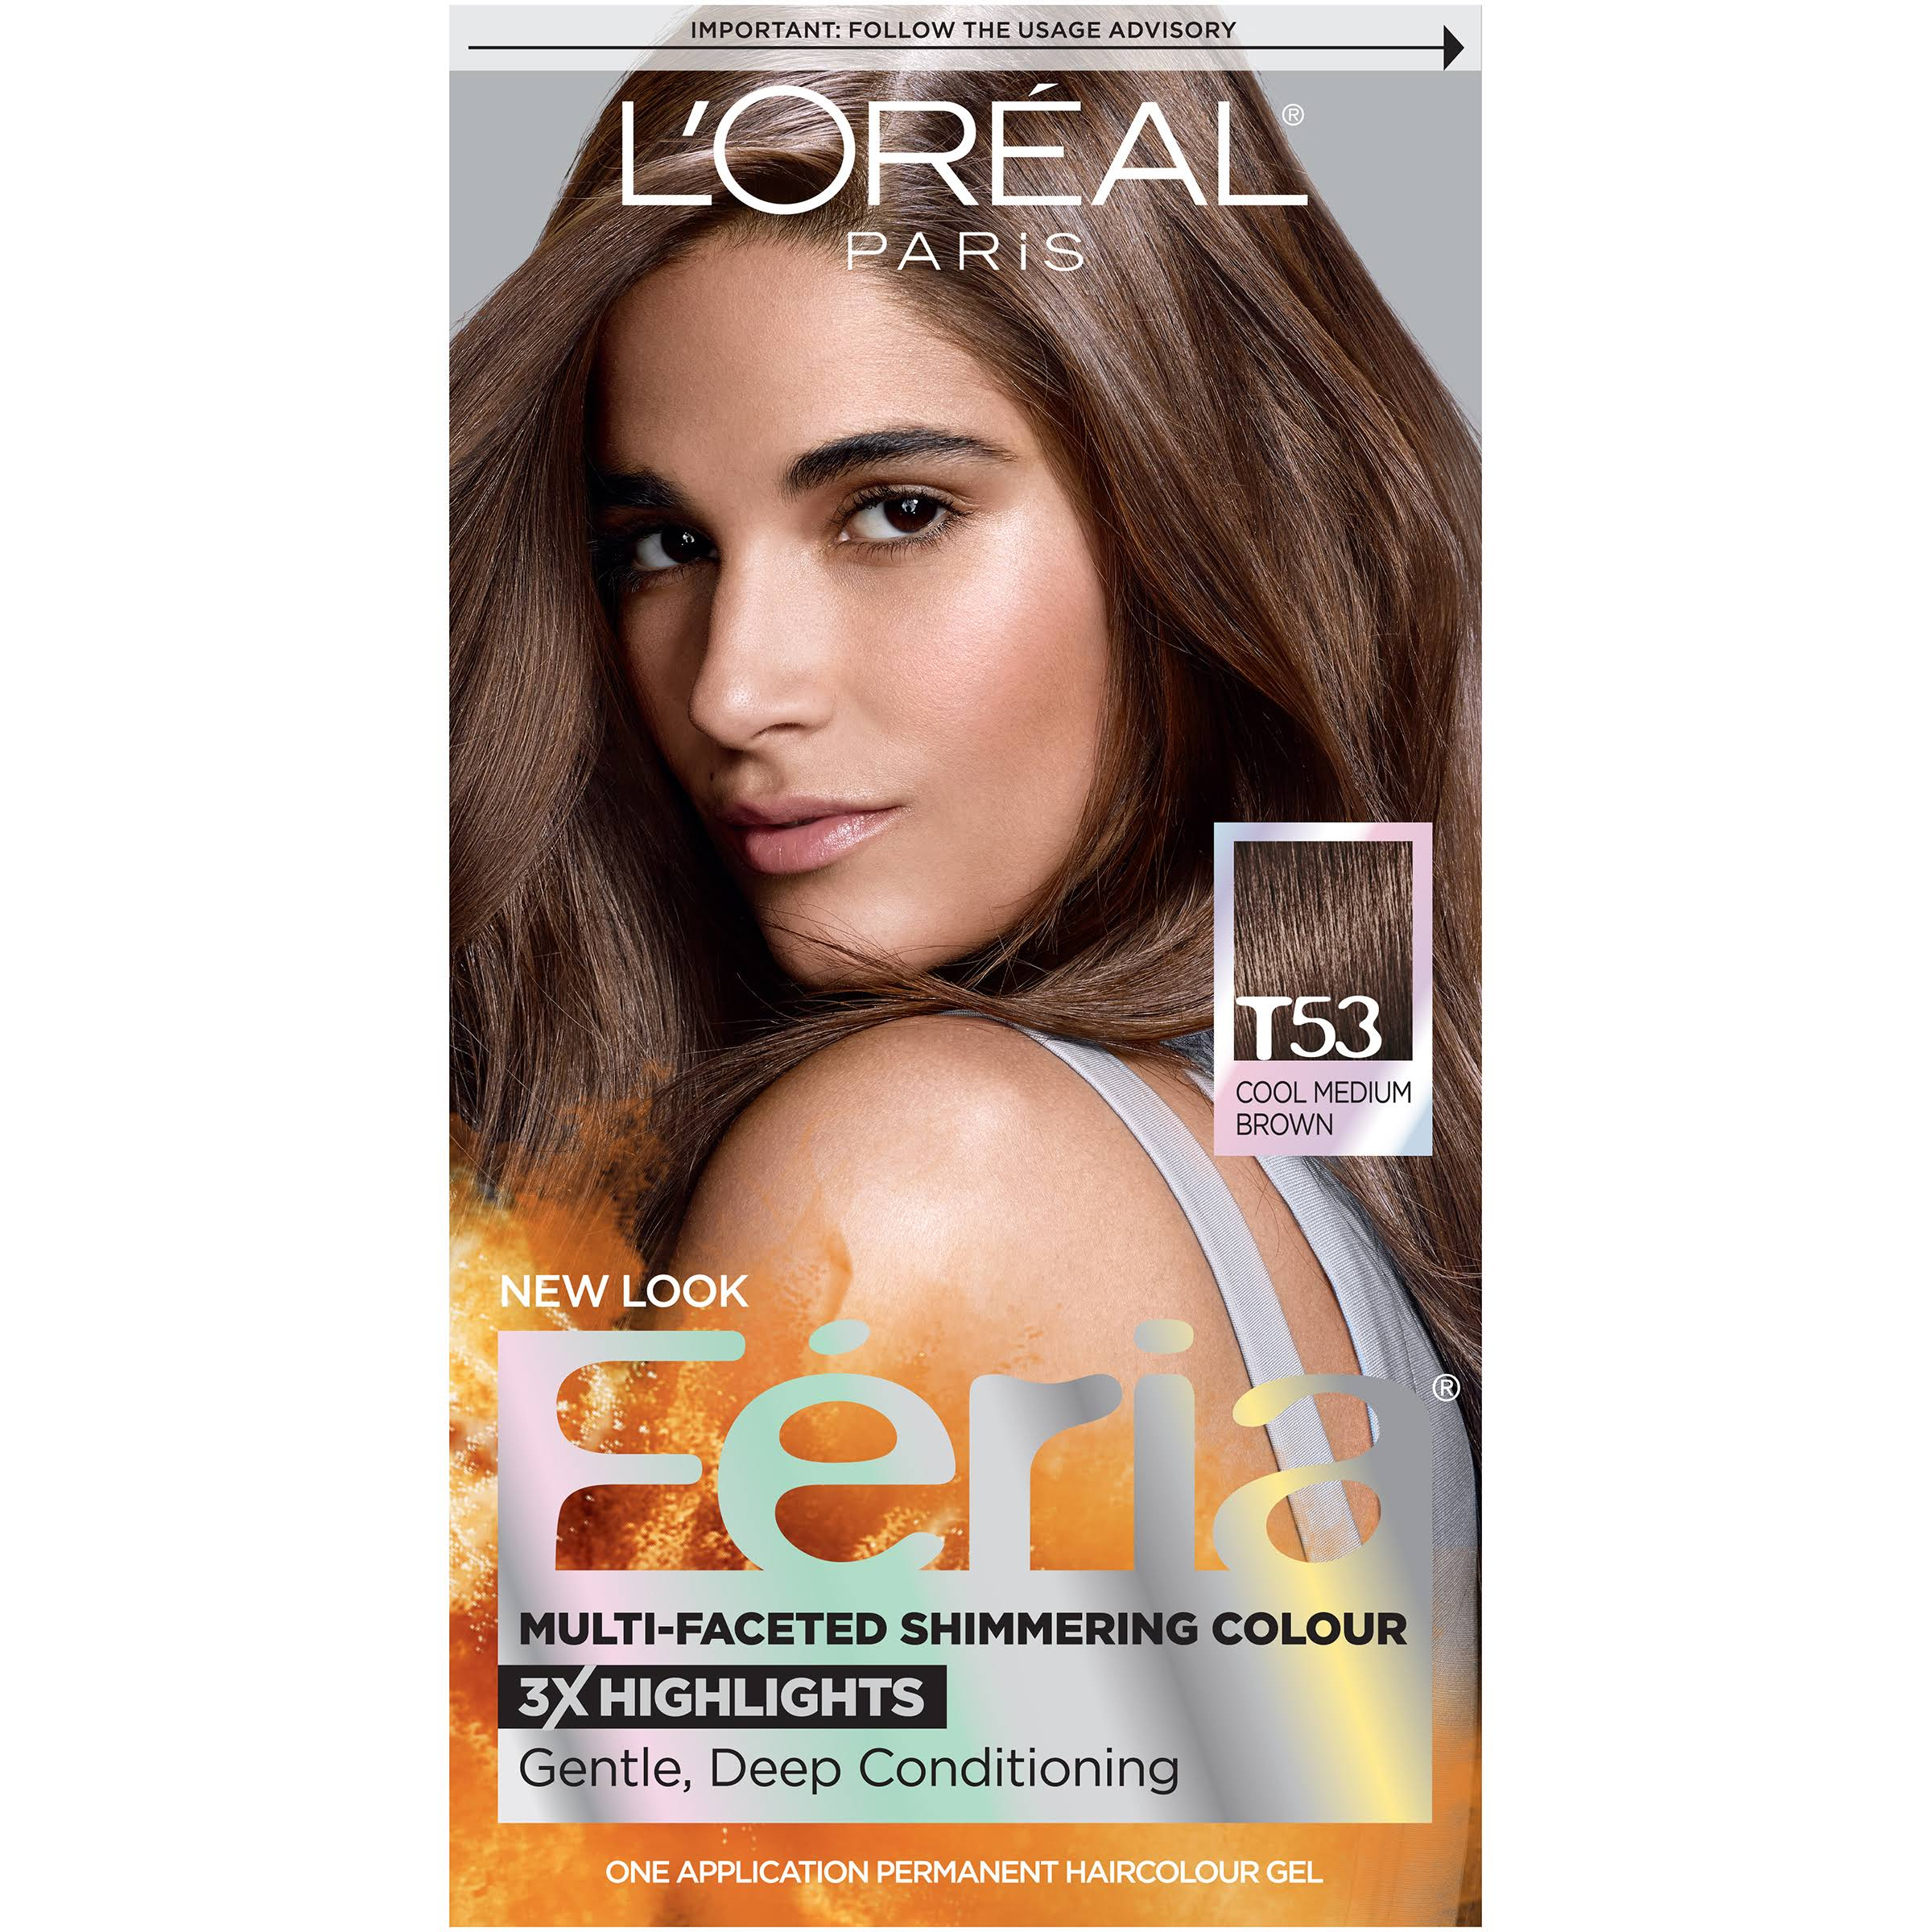 L'oreal Paris Feria Moonlit Tortoise Permanent Hair Color Gel - T53 Cool Medium Brown